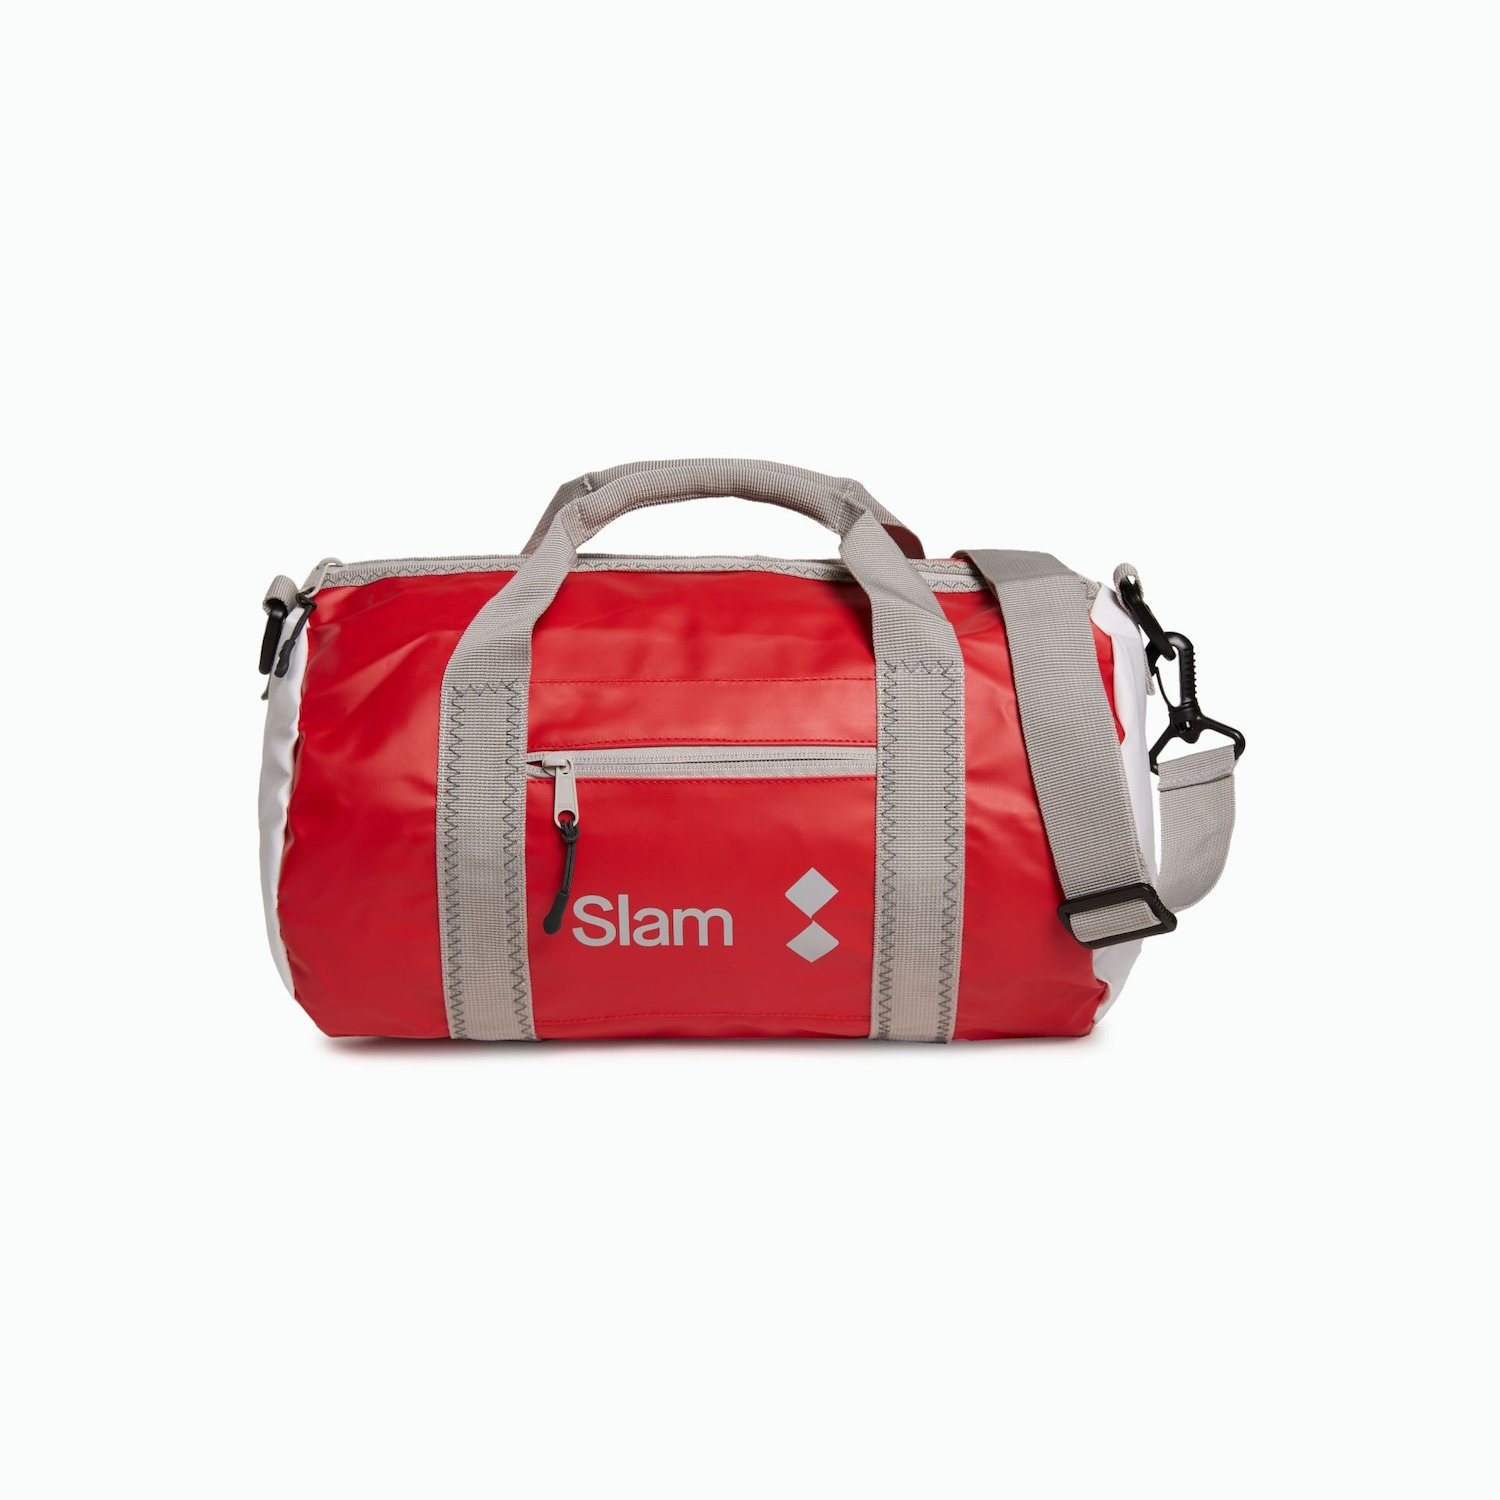 Wr Bag A237 - Slam Red